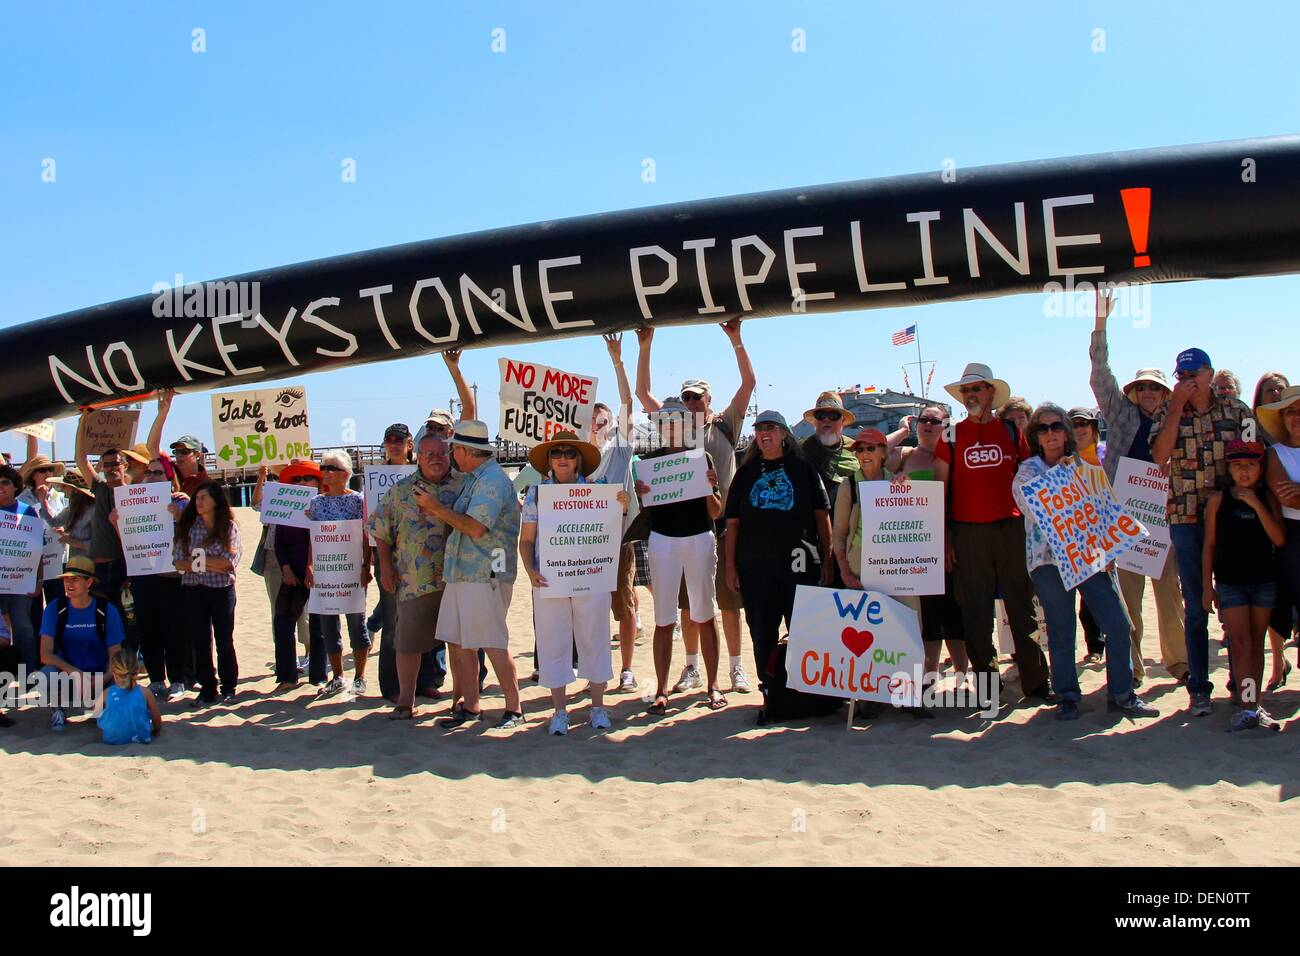 keystone-pipeline-protest-in-santa-barba